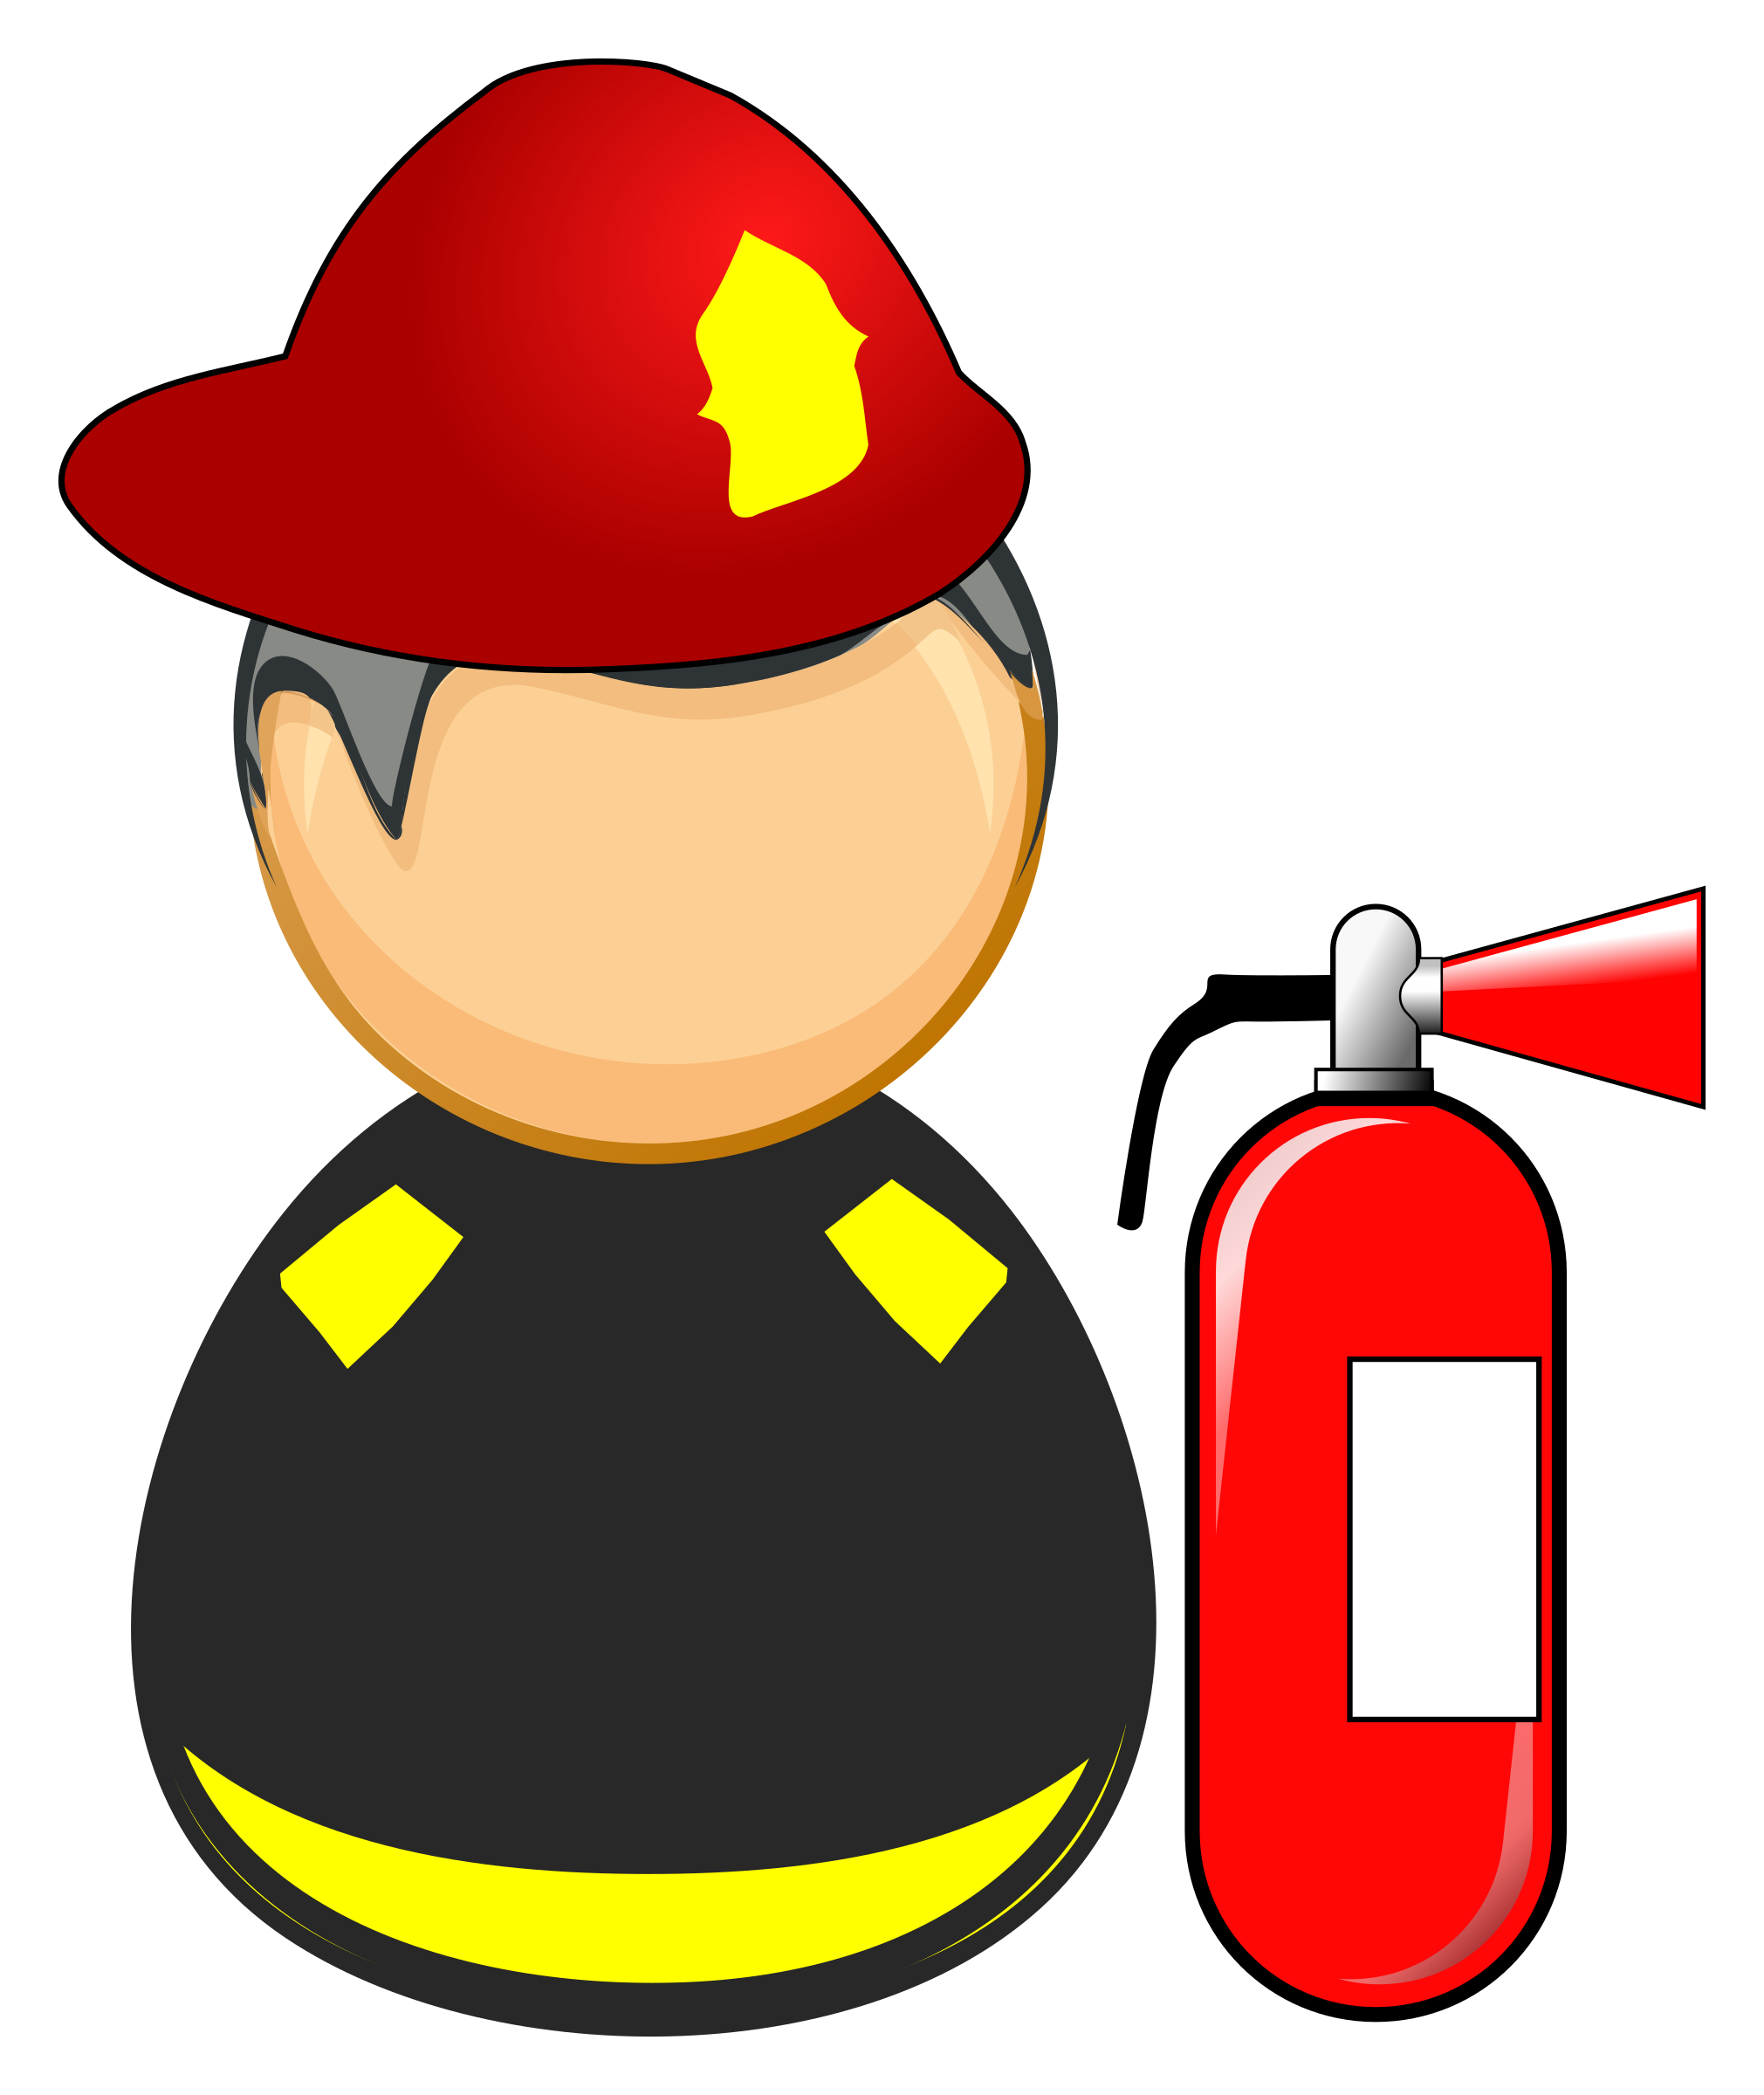 2021x2400 Fire Hat Free Vector Graphic Hat Fireman Silhouette Hardhat